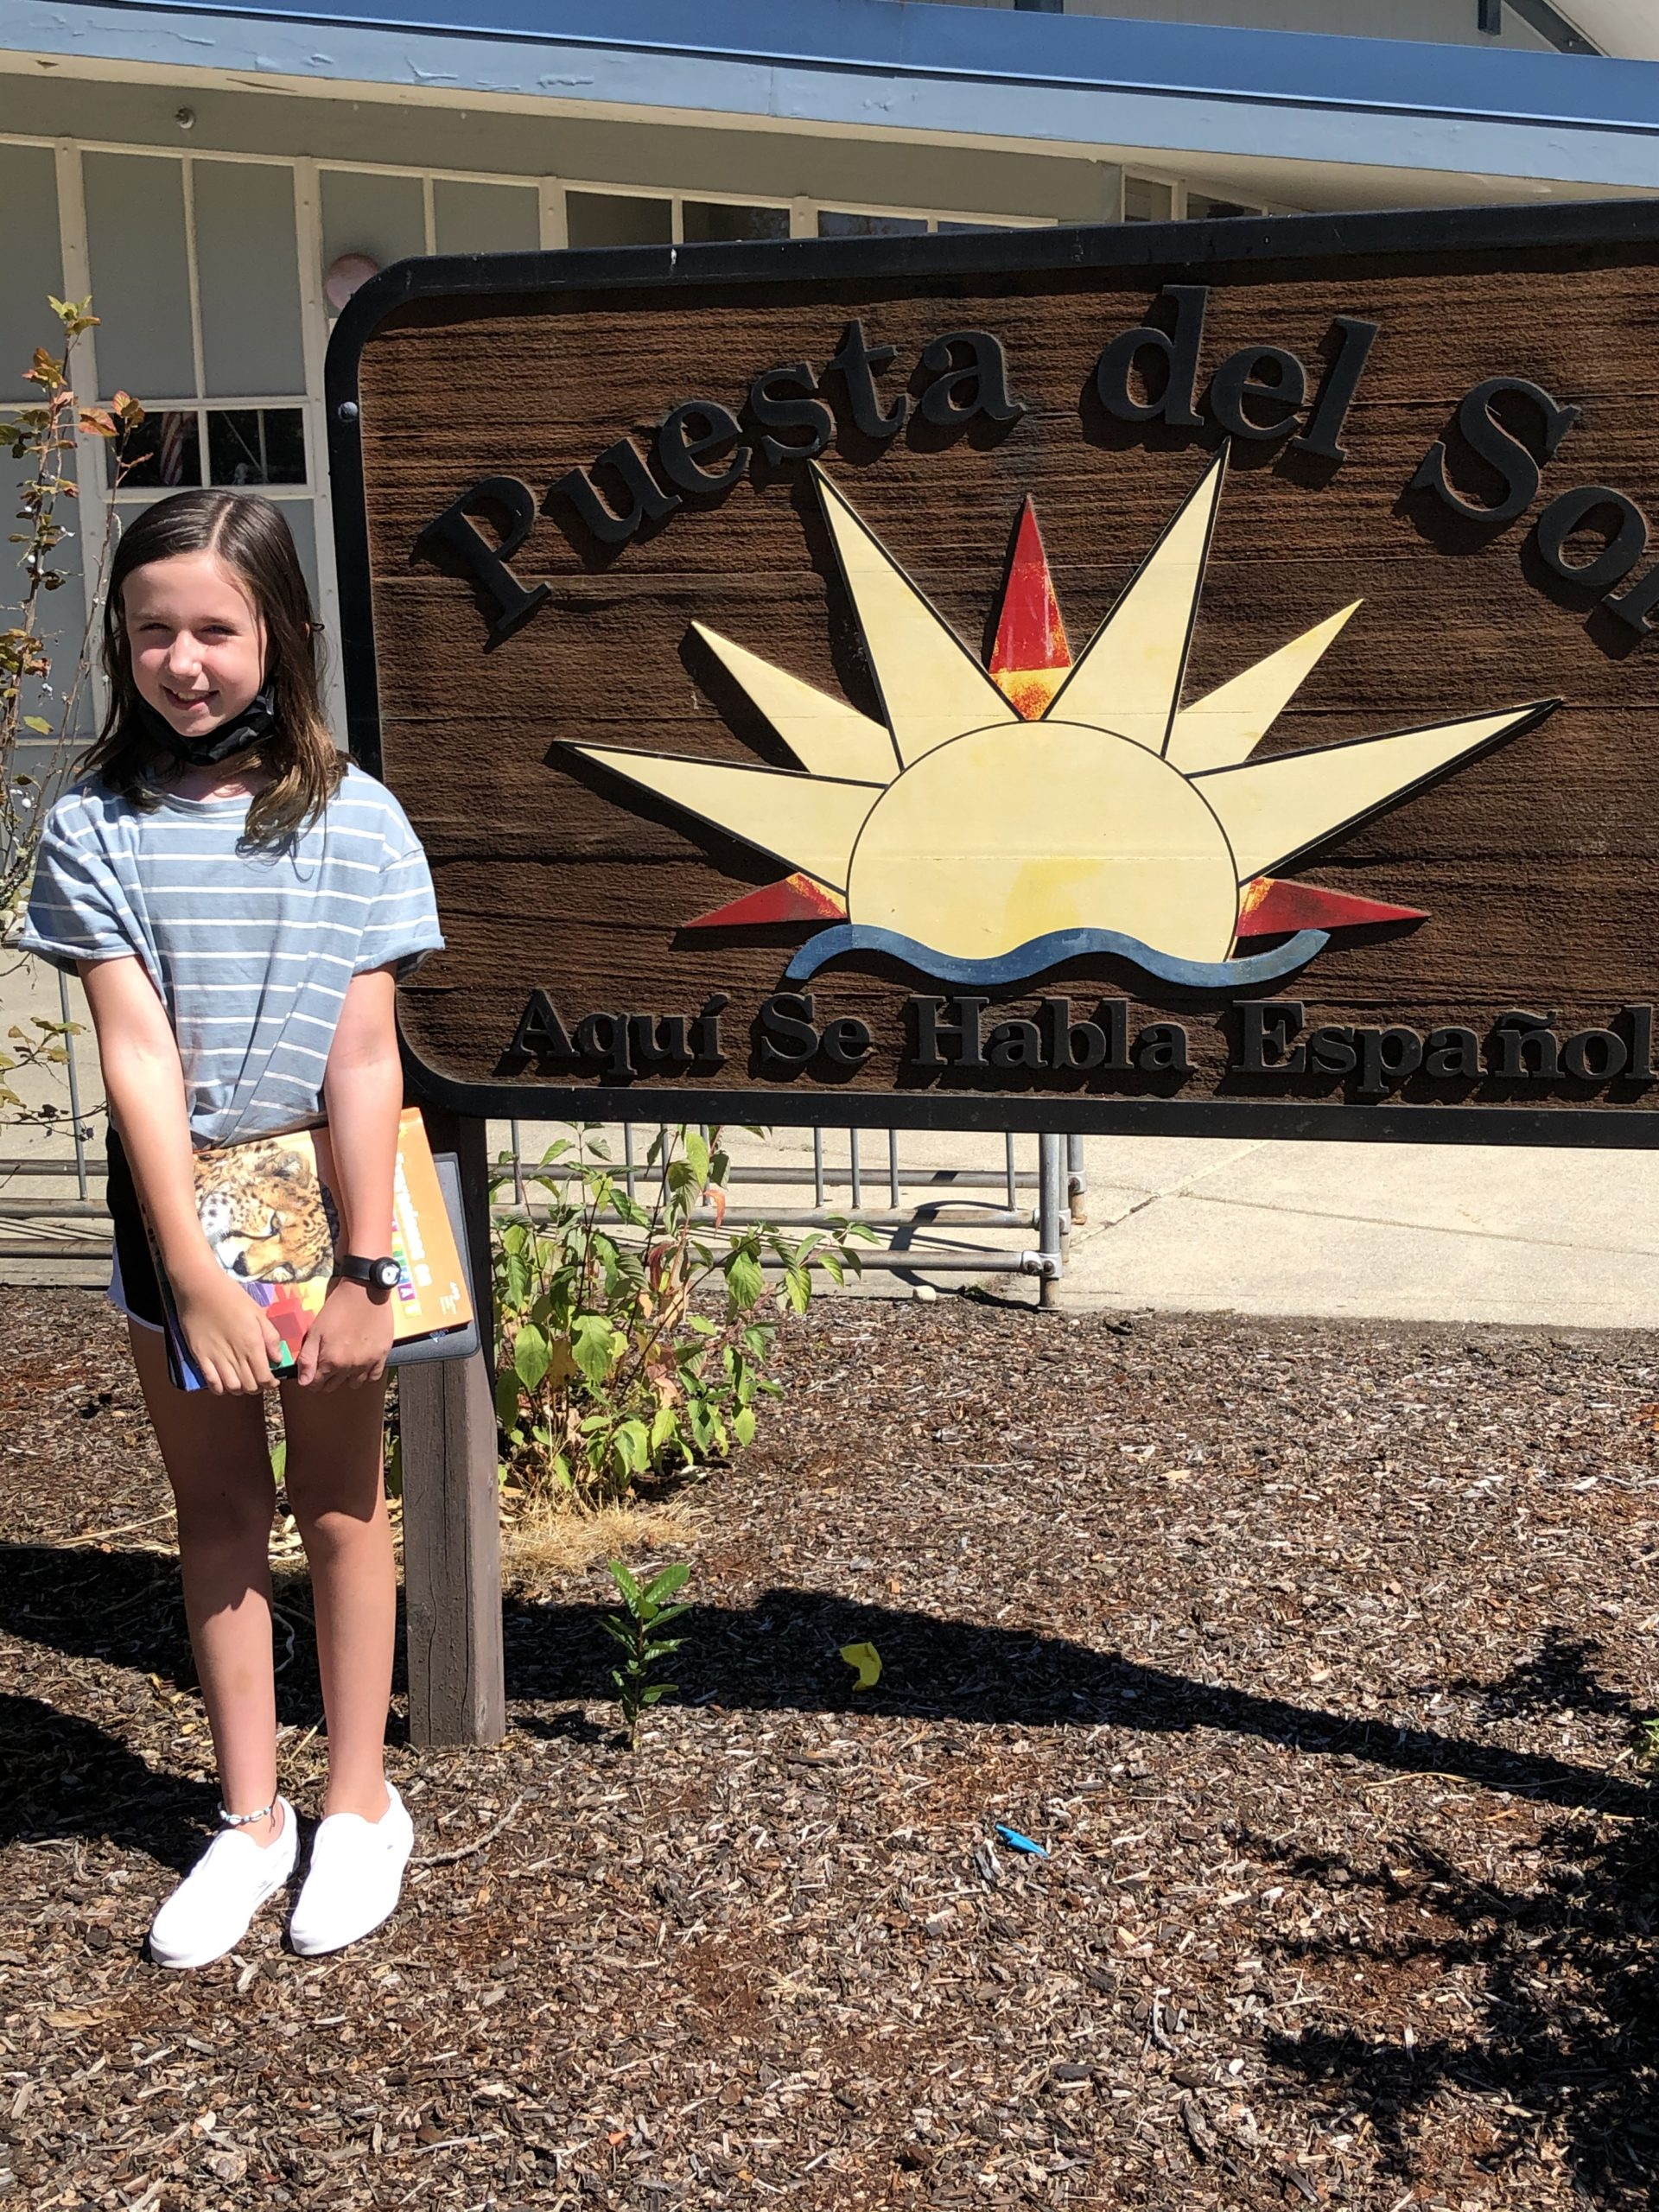 a student smiling in front of the Puesta del Sol sign